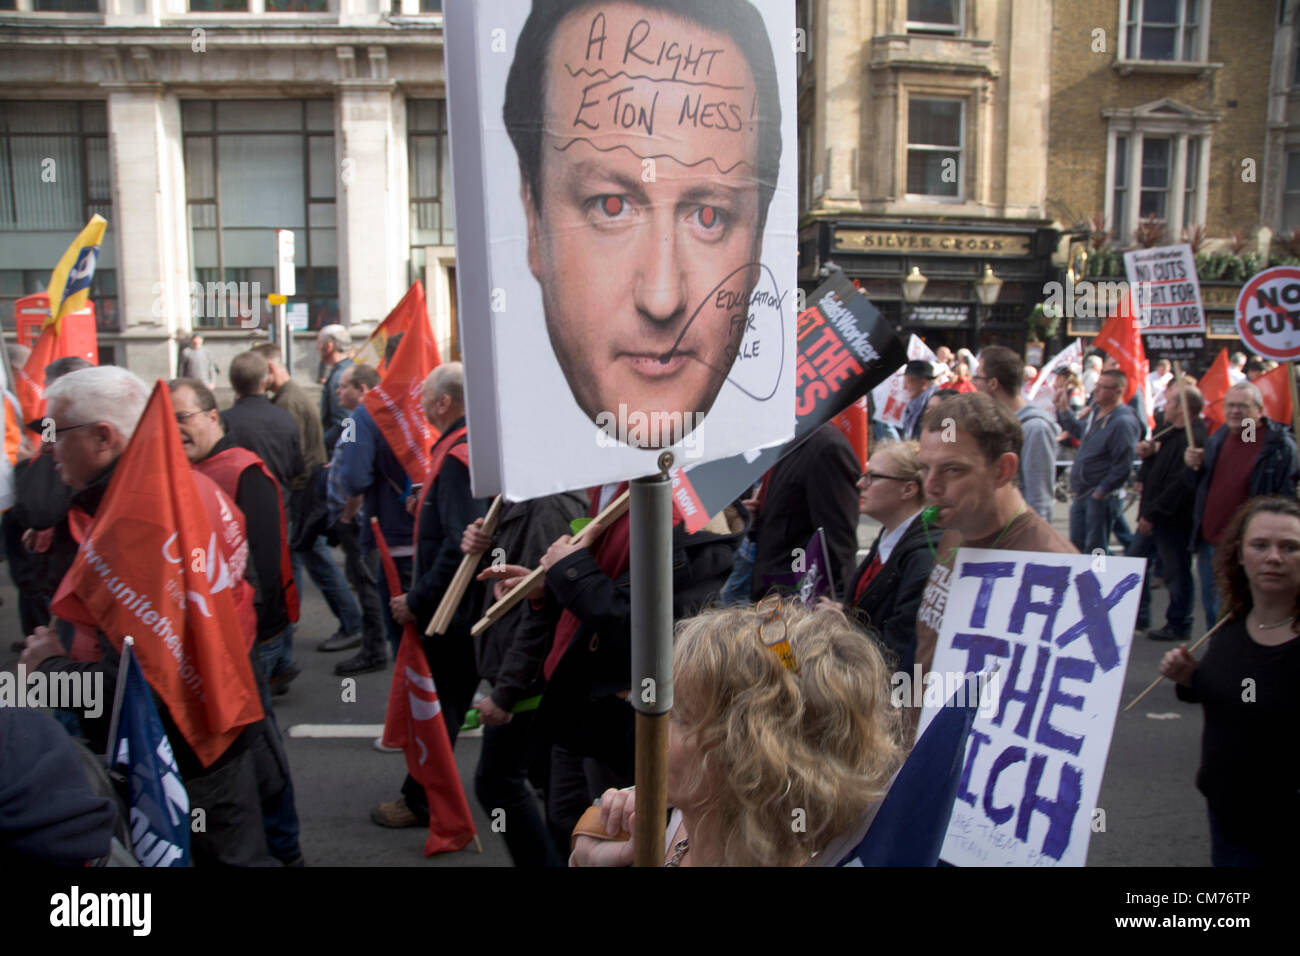 20th October 2012. London UK. Thousands of Union members and campaigners march against government austerity and - Stock Image